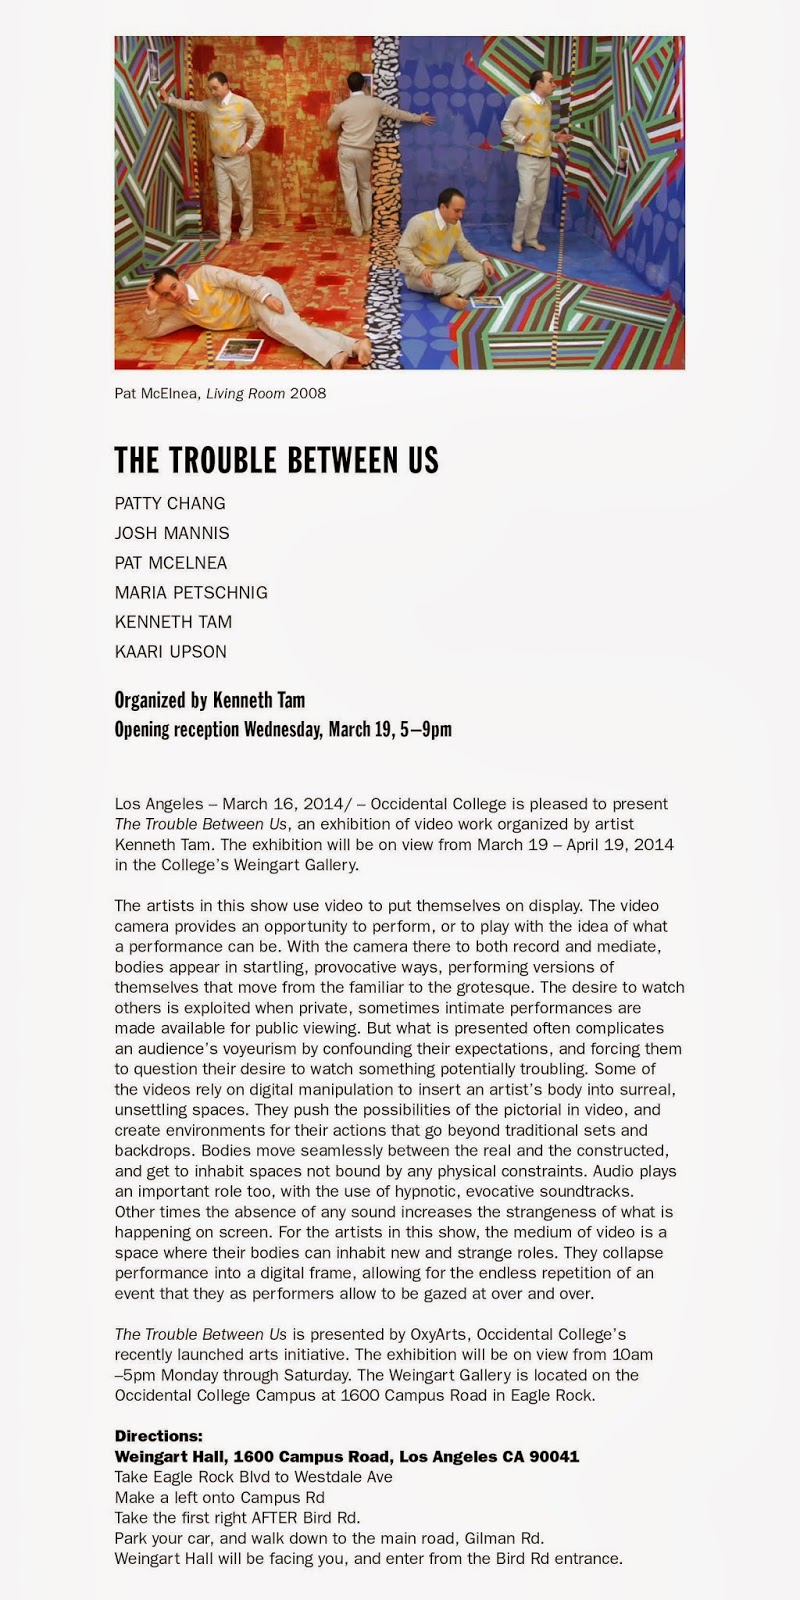 http://www.oxy.edu/events/trouble-between-us-exhibition-organized-kenneth-tam